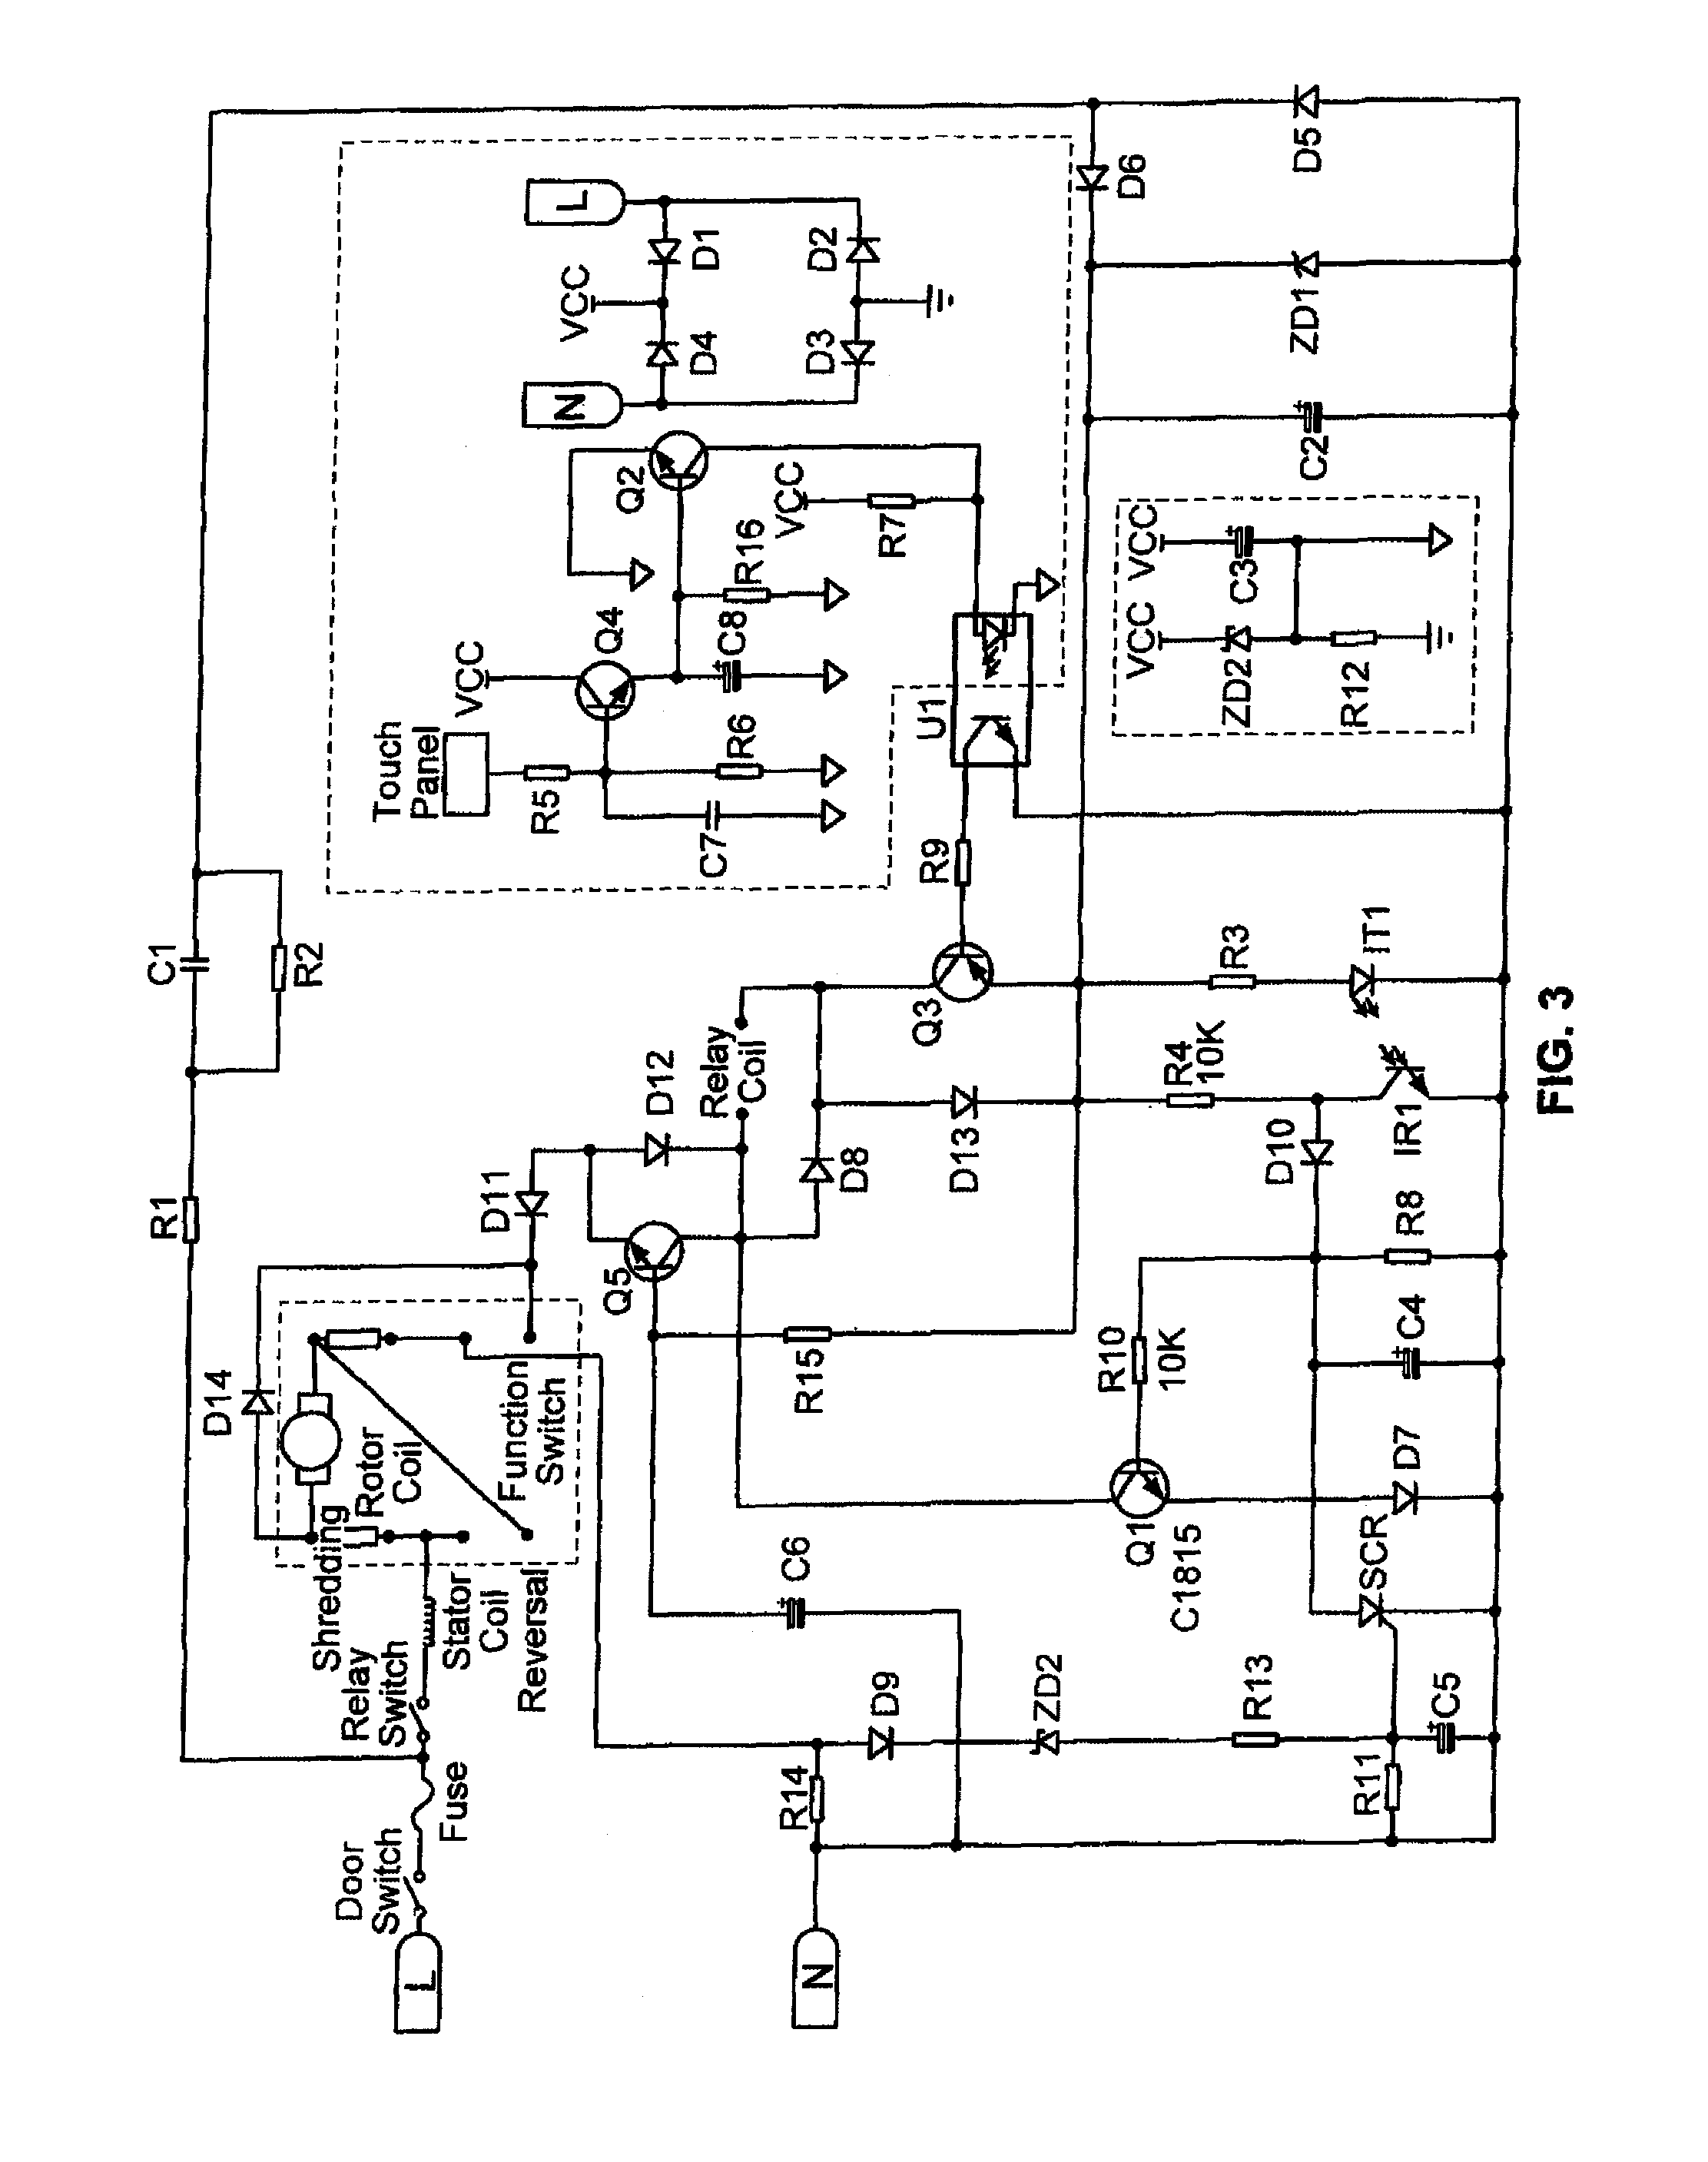 Asco Automatic Transfer Switch Wiring Diagram Auto Electrical Solydine M28 Ups Eaton Free Engine